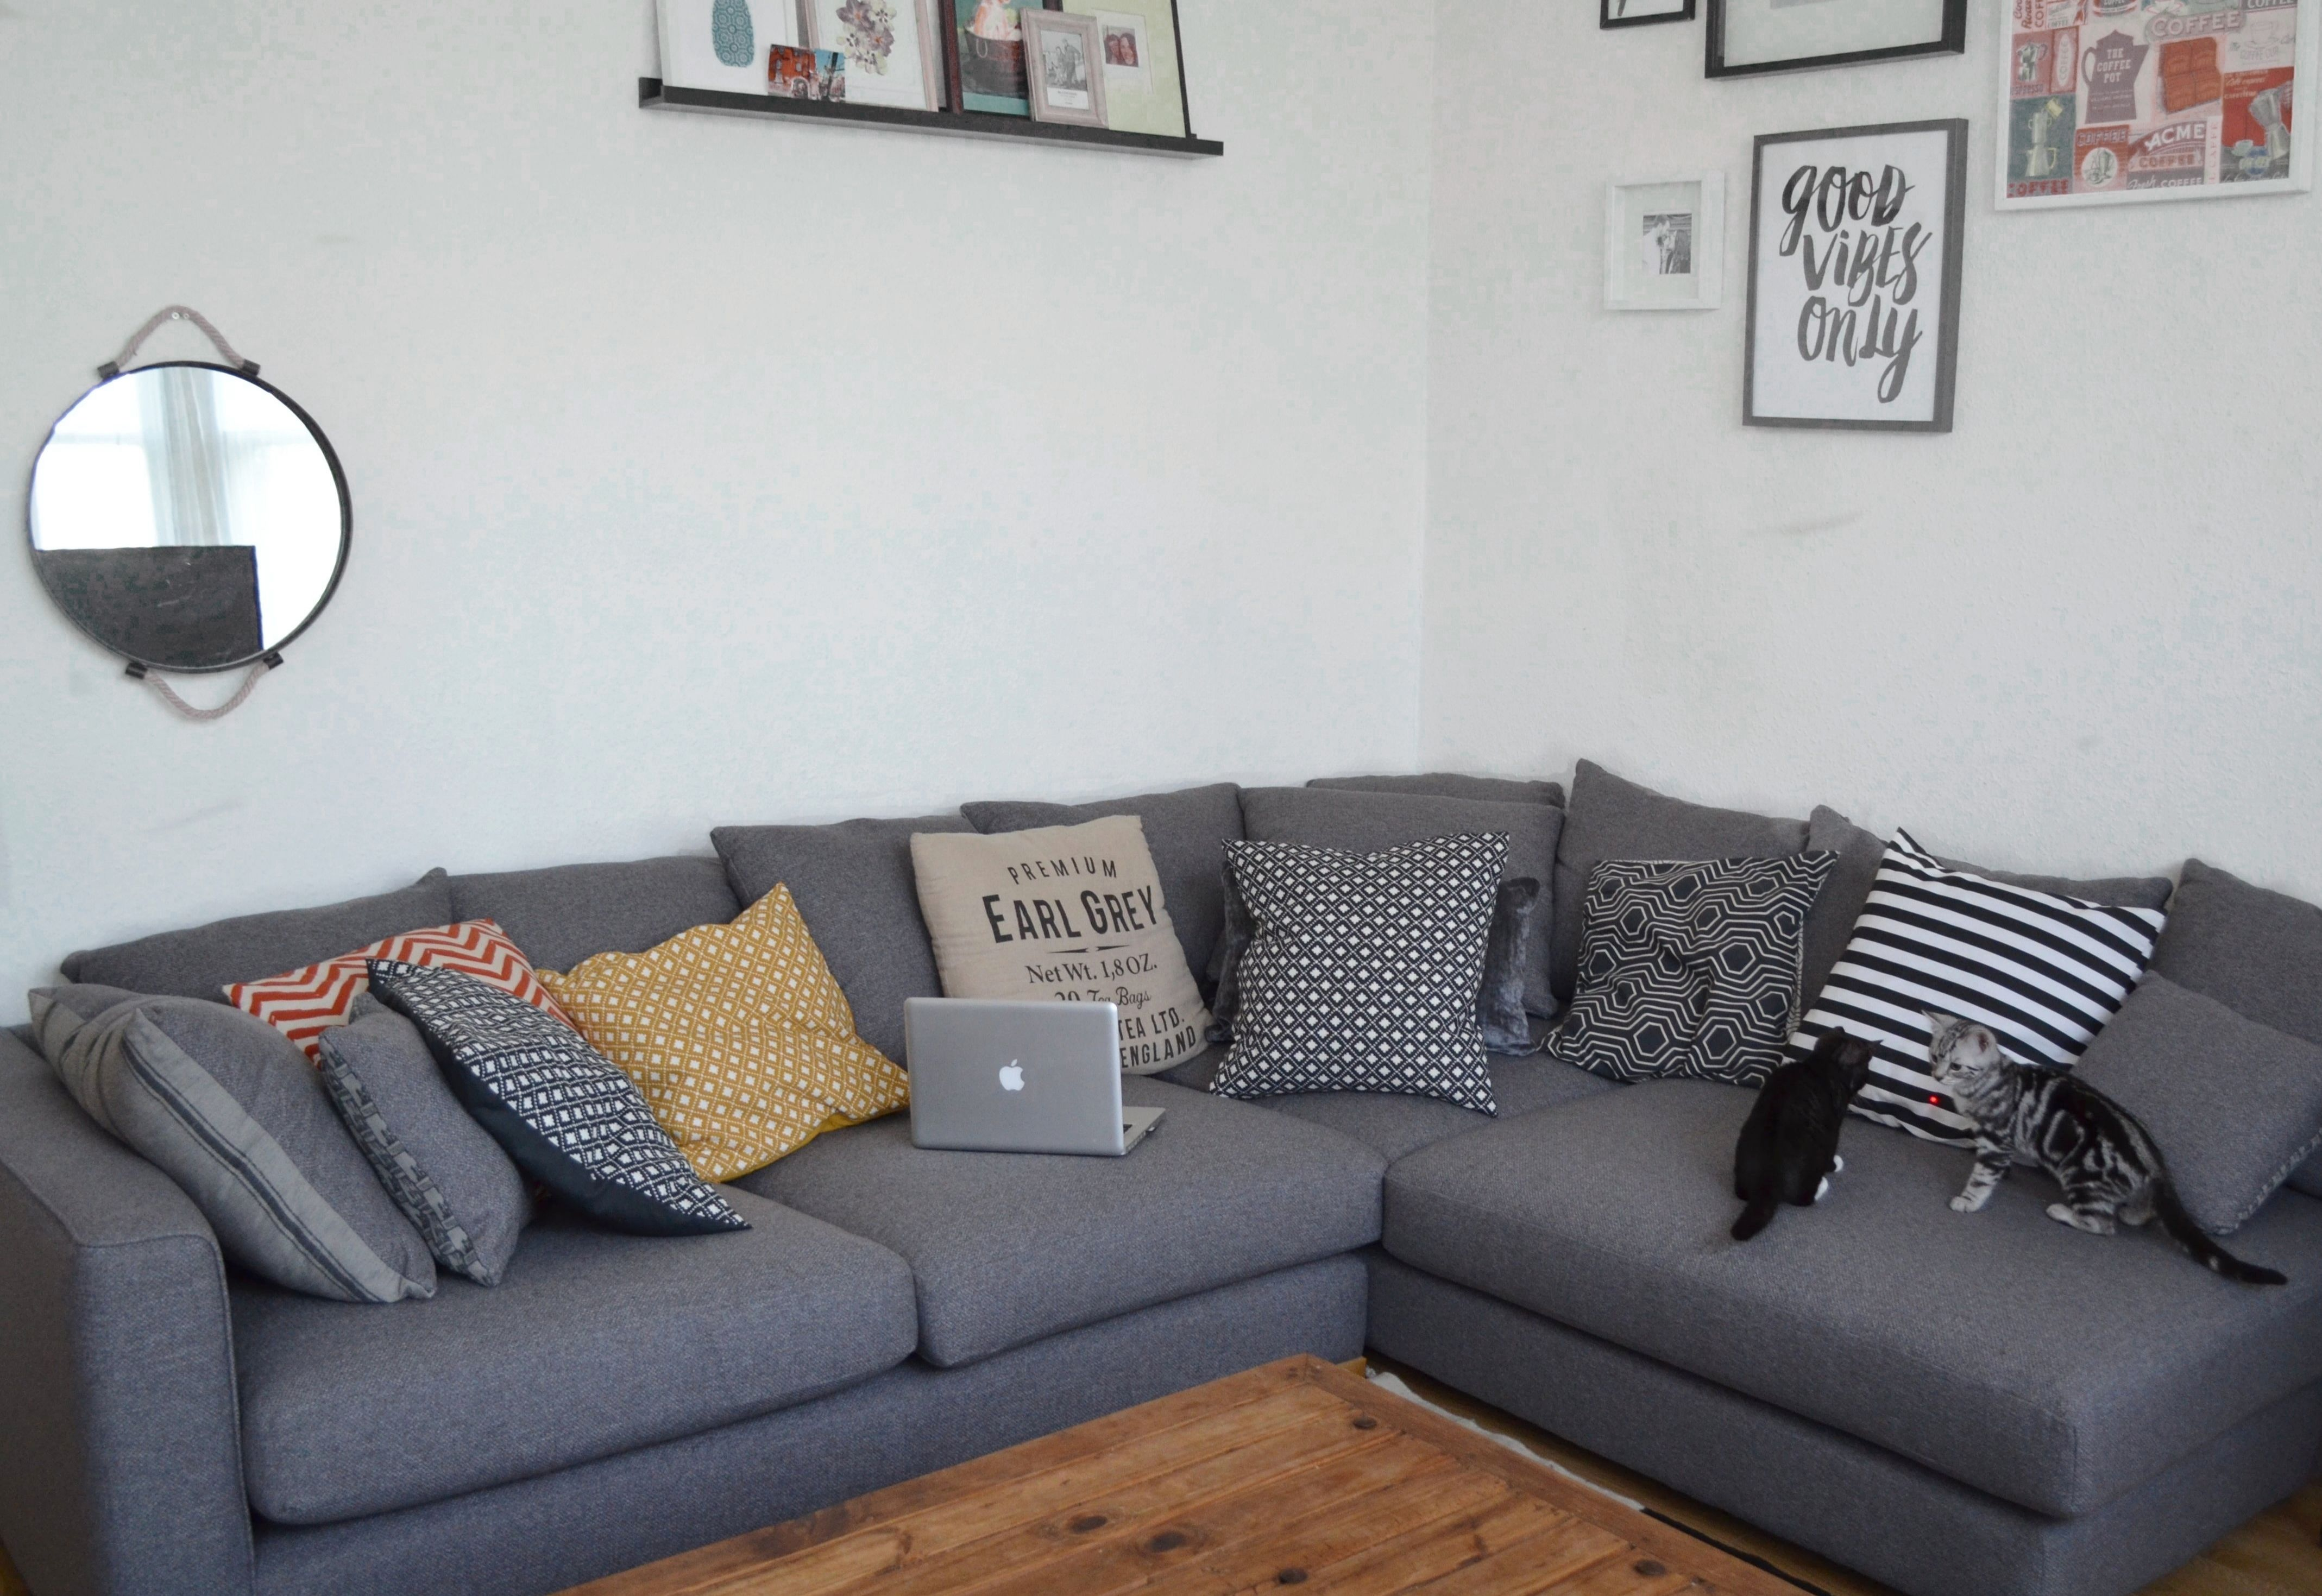 Home Is Where The Heart Is Corner Sofa Living Room Grey Corner Sofa Corner Sofa Small Living Room